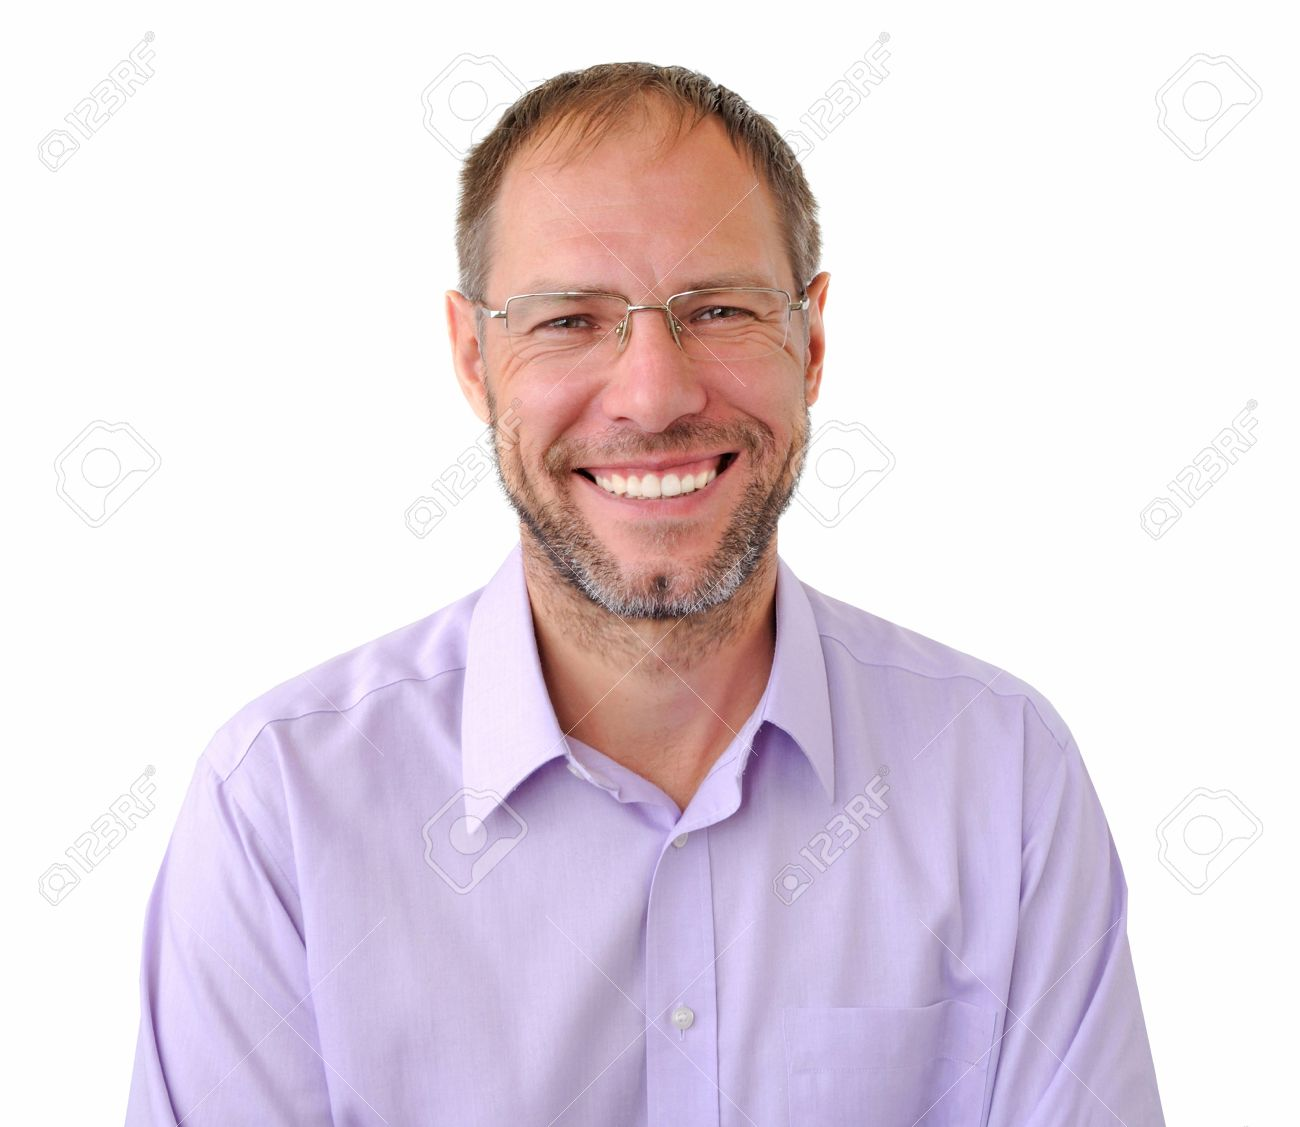 Smiling men isolated on the white background - 16334742